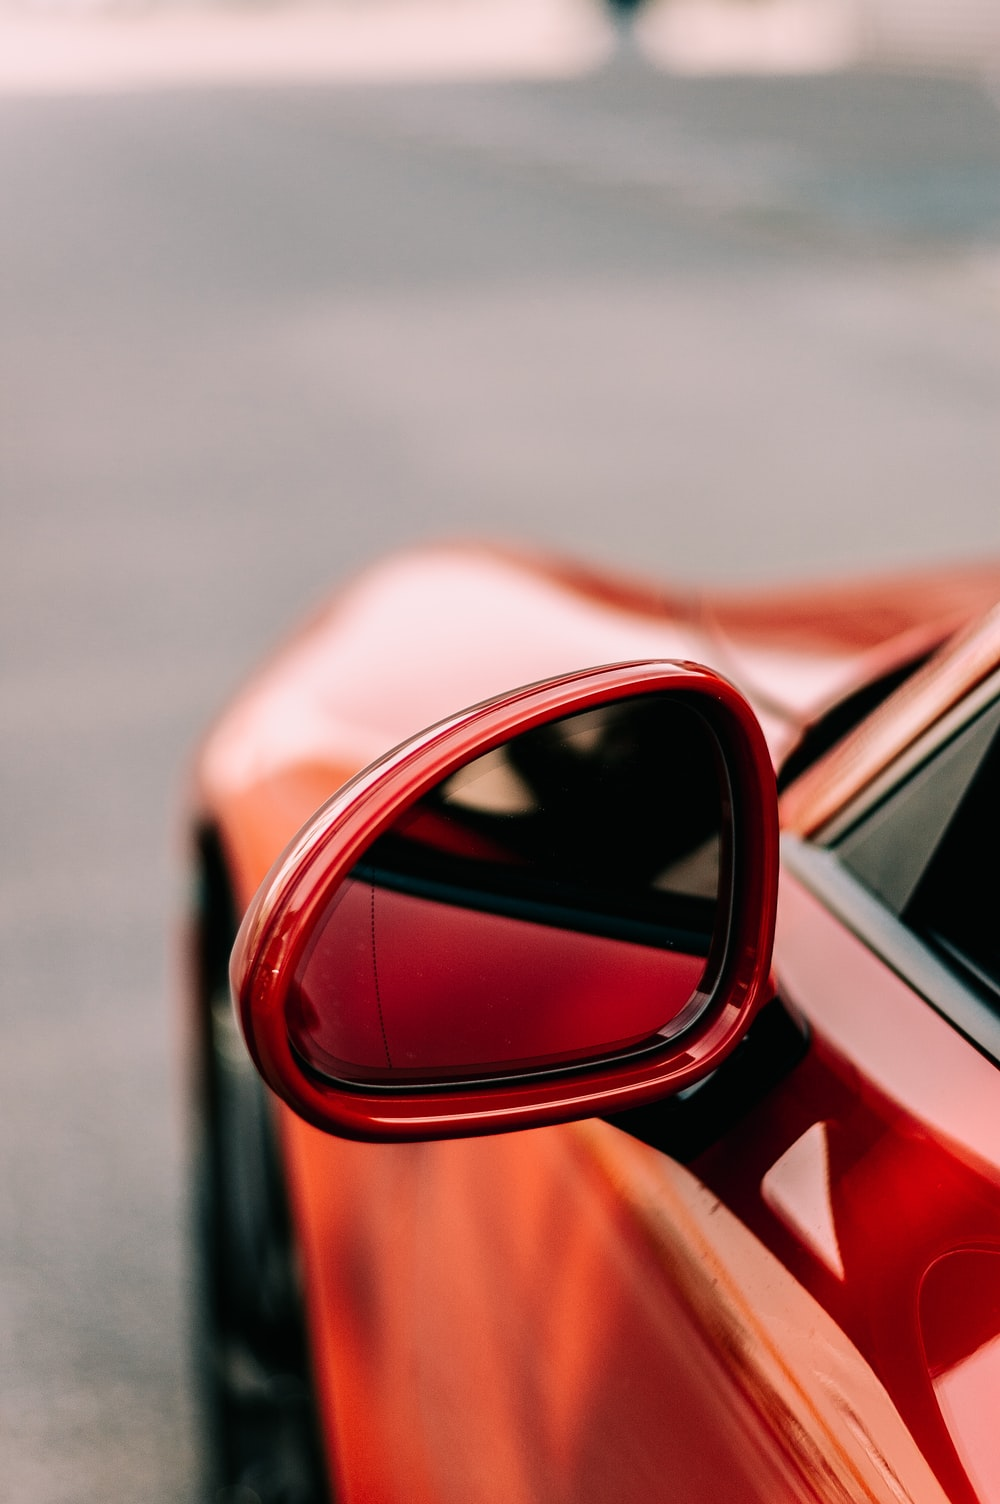 close-up photo of red vehicle wing mirror